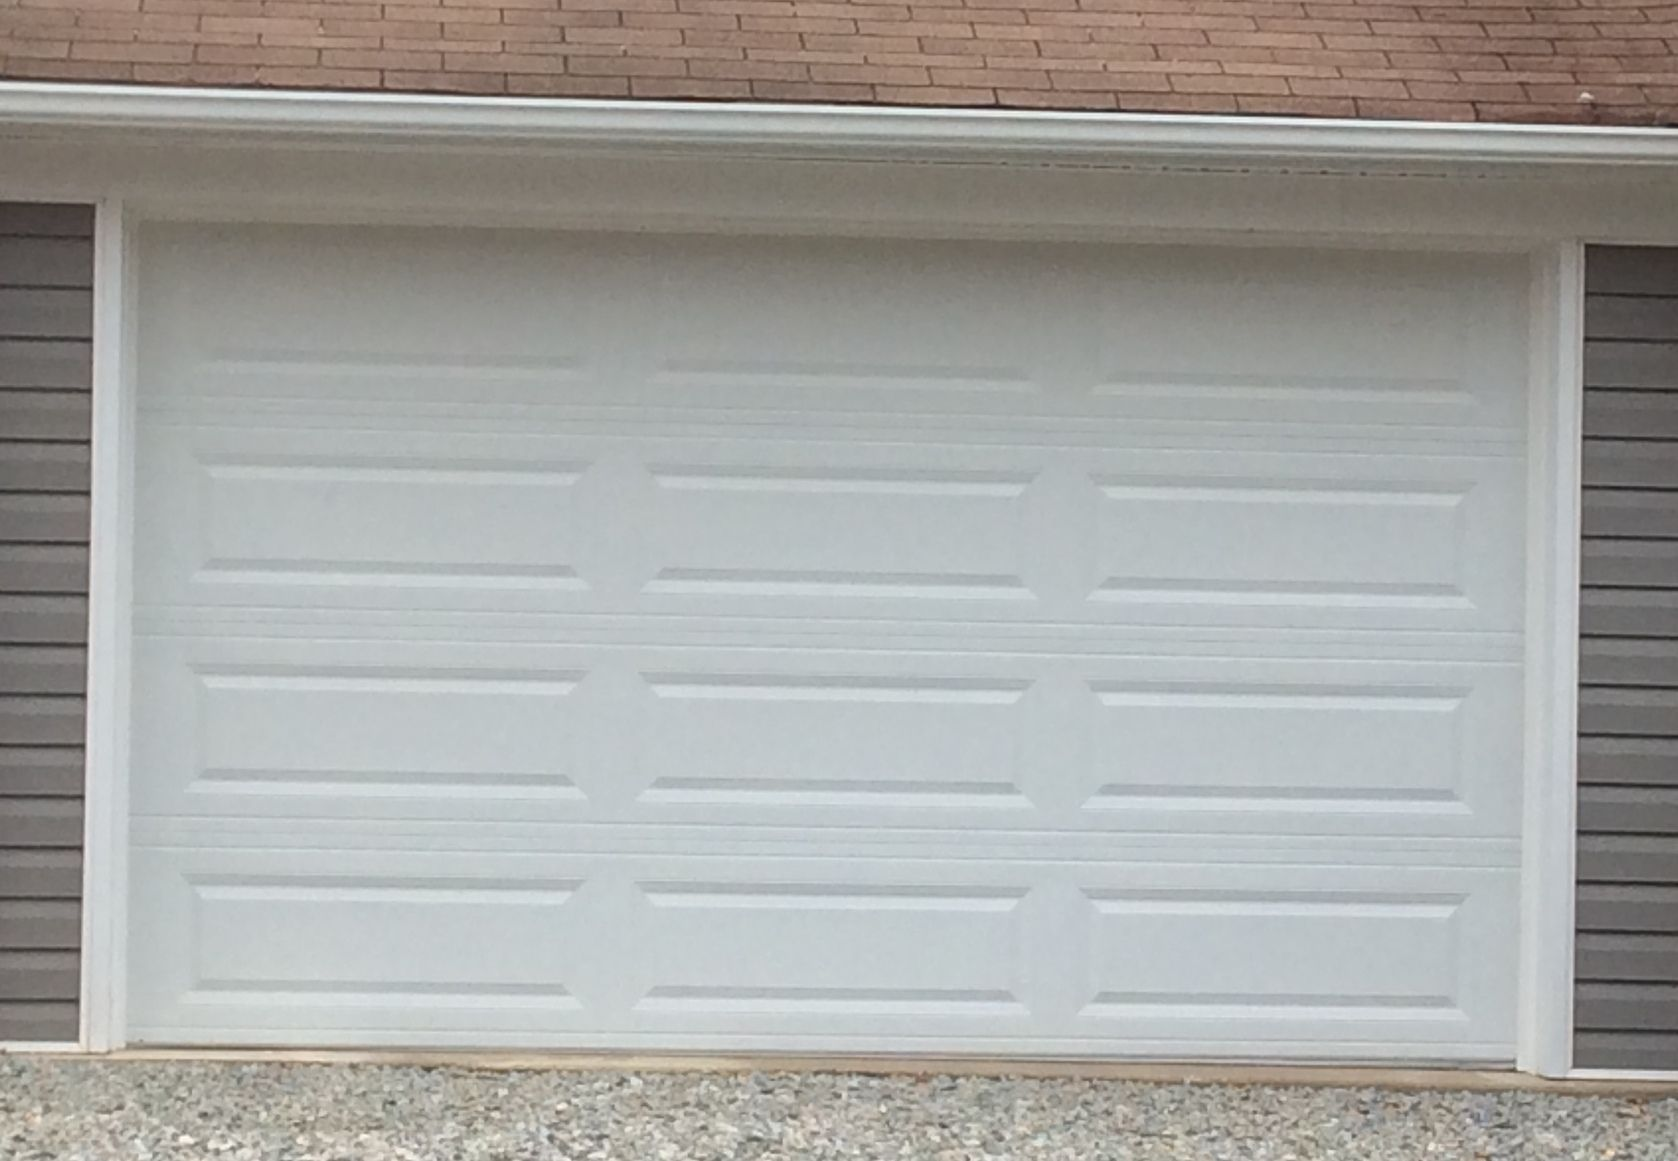 12x7 Model 4251 Raised Long Panel Steel Garage Door Installed By The Richmond Store Garage Door Panels Door Installation Garage Door Hardware